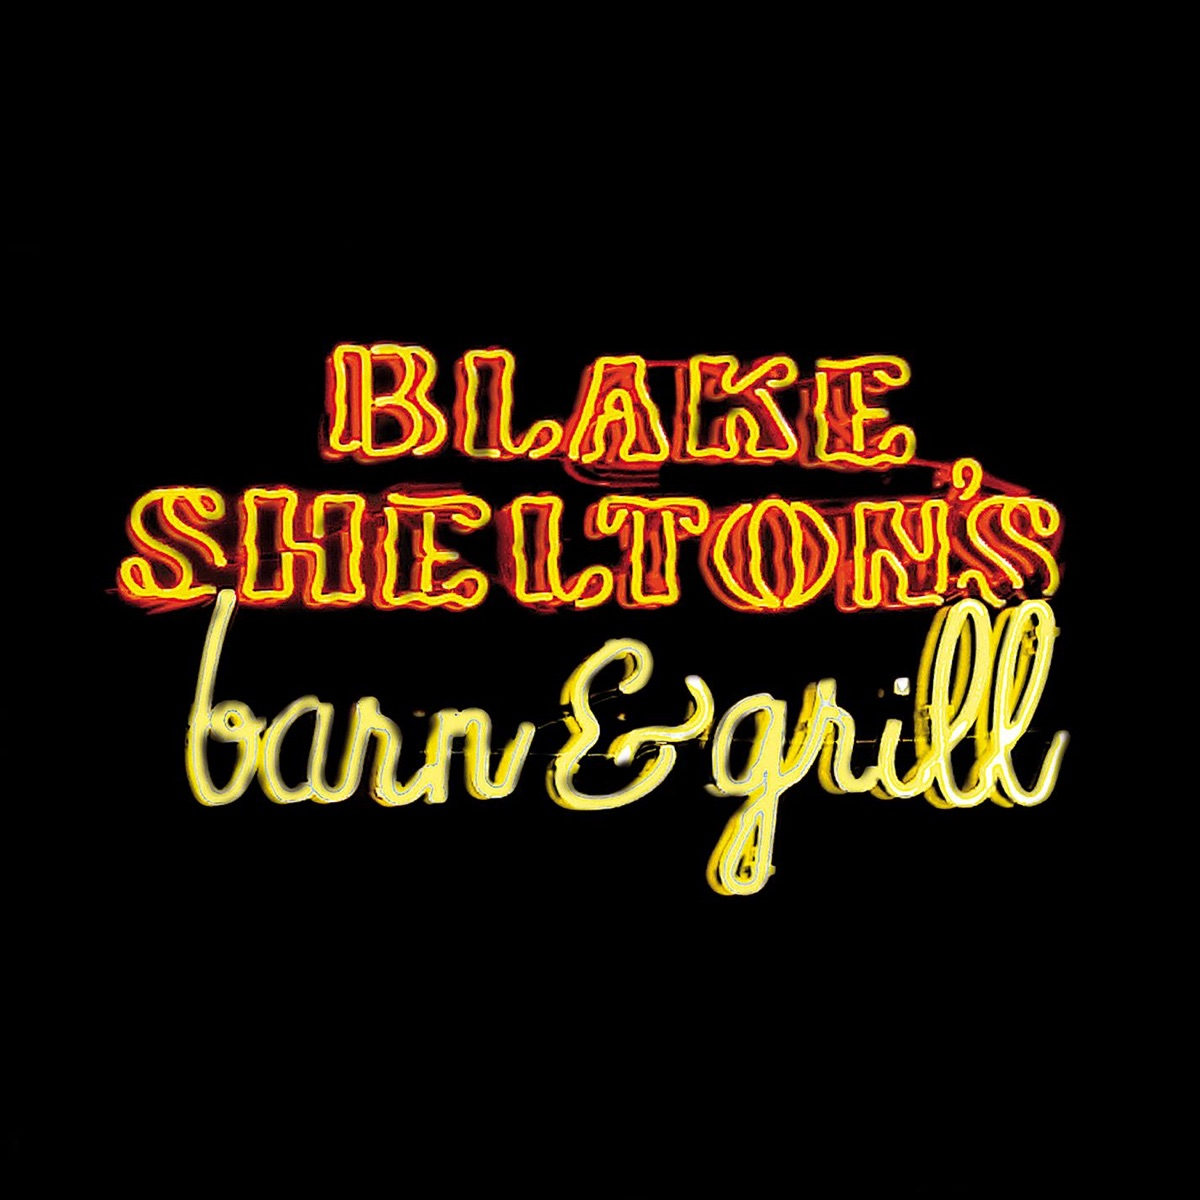 Blake Sheltons Barn and Grill Blake Shelton CD cover